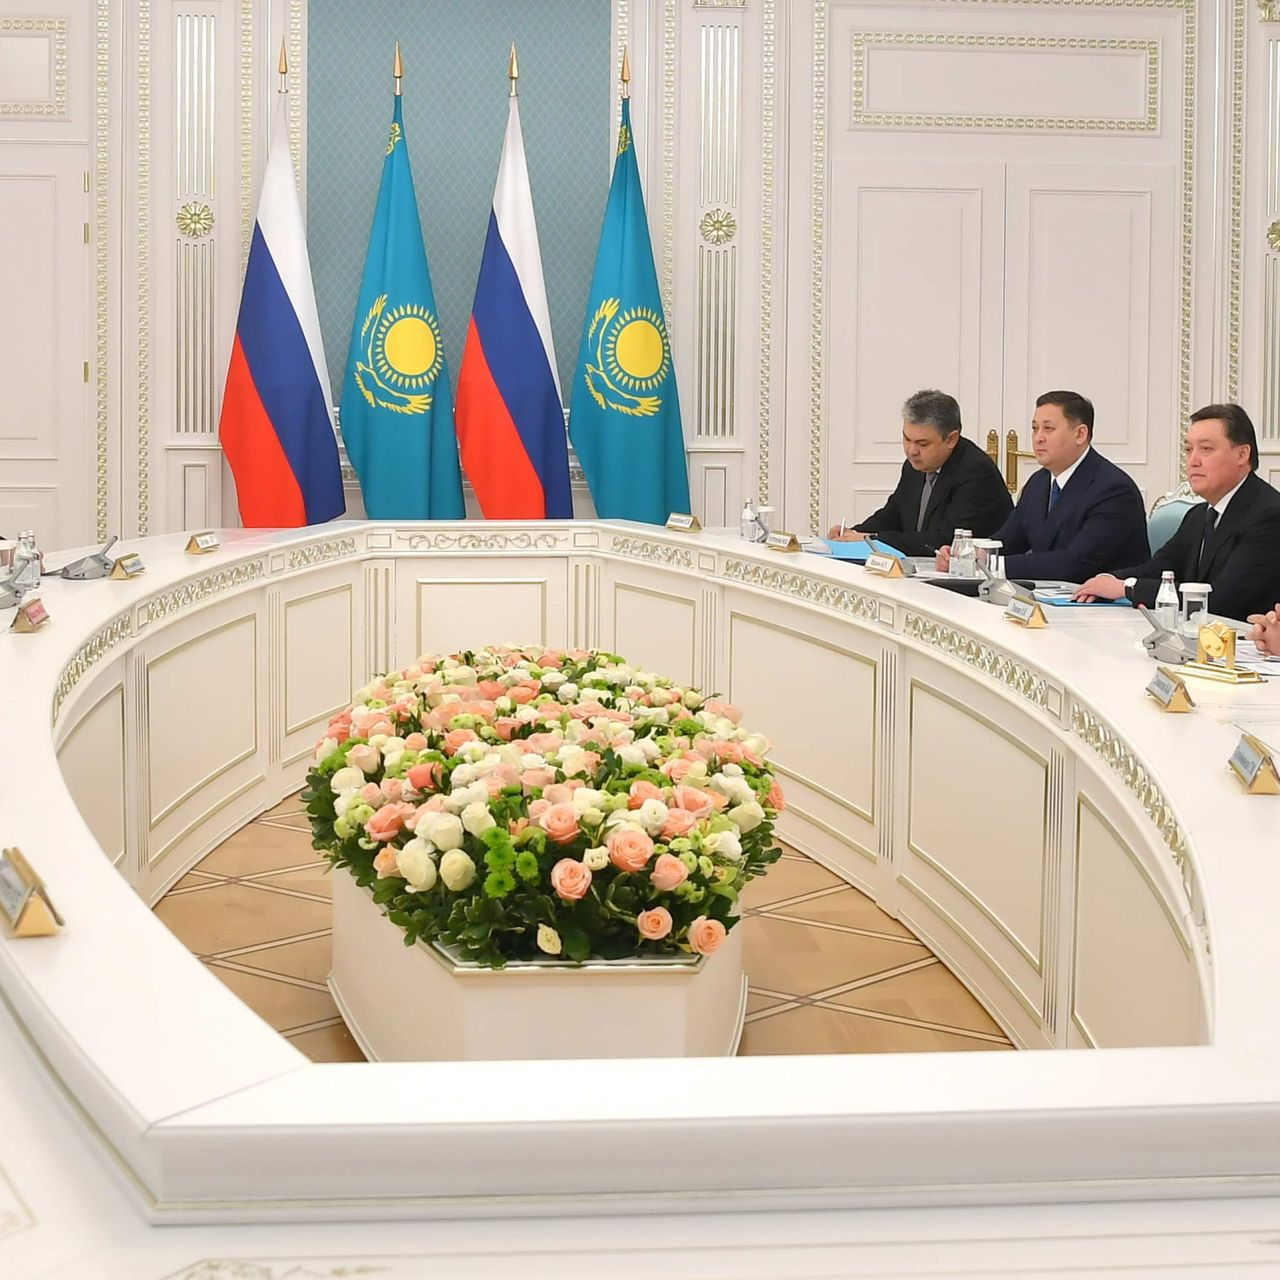 The Head of State held a meeting with Russian Prime Minister Mikhail Mishustin